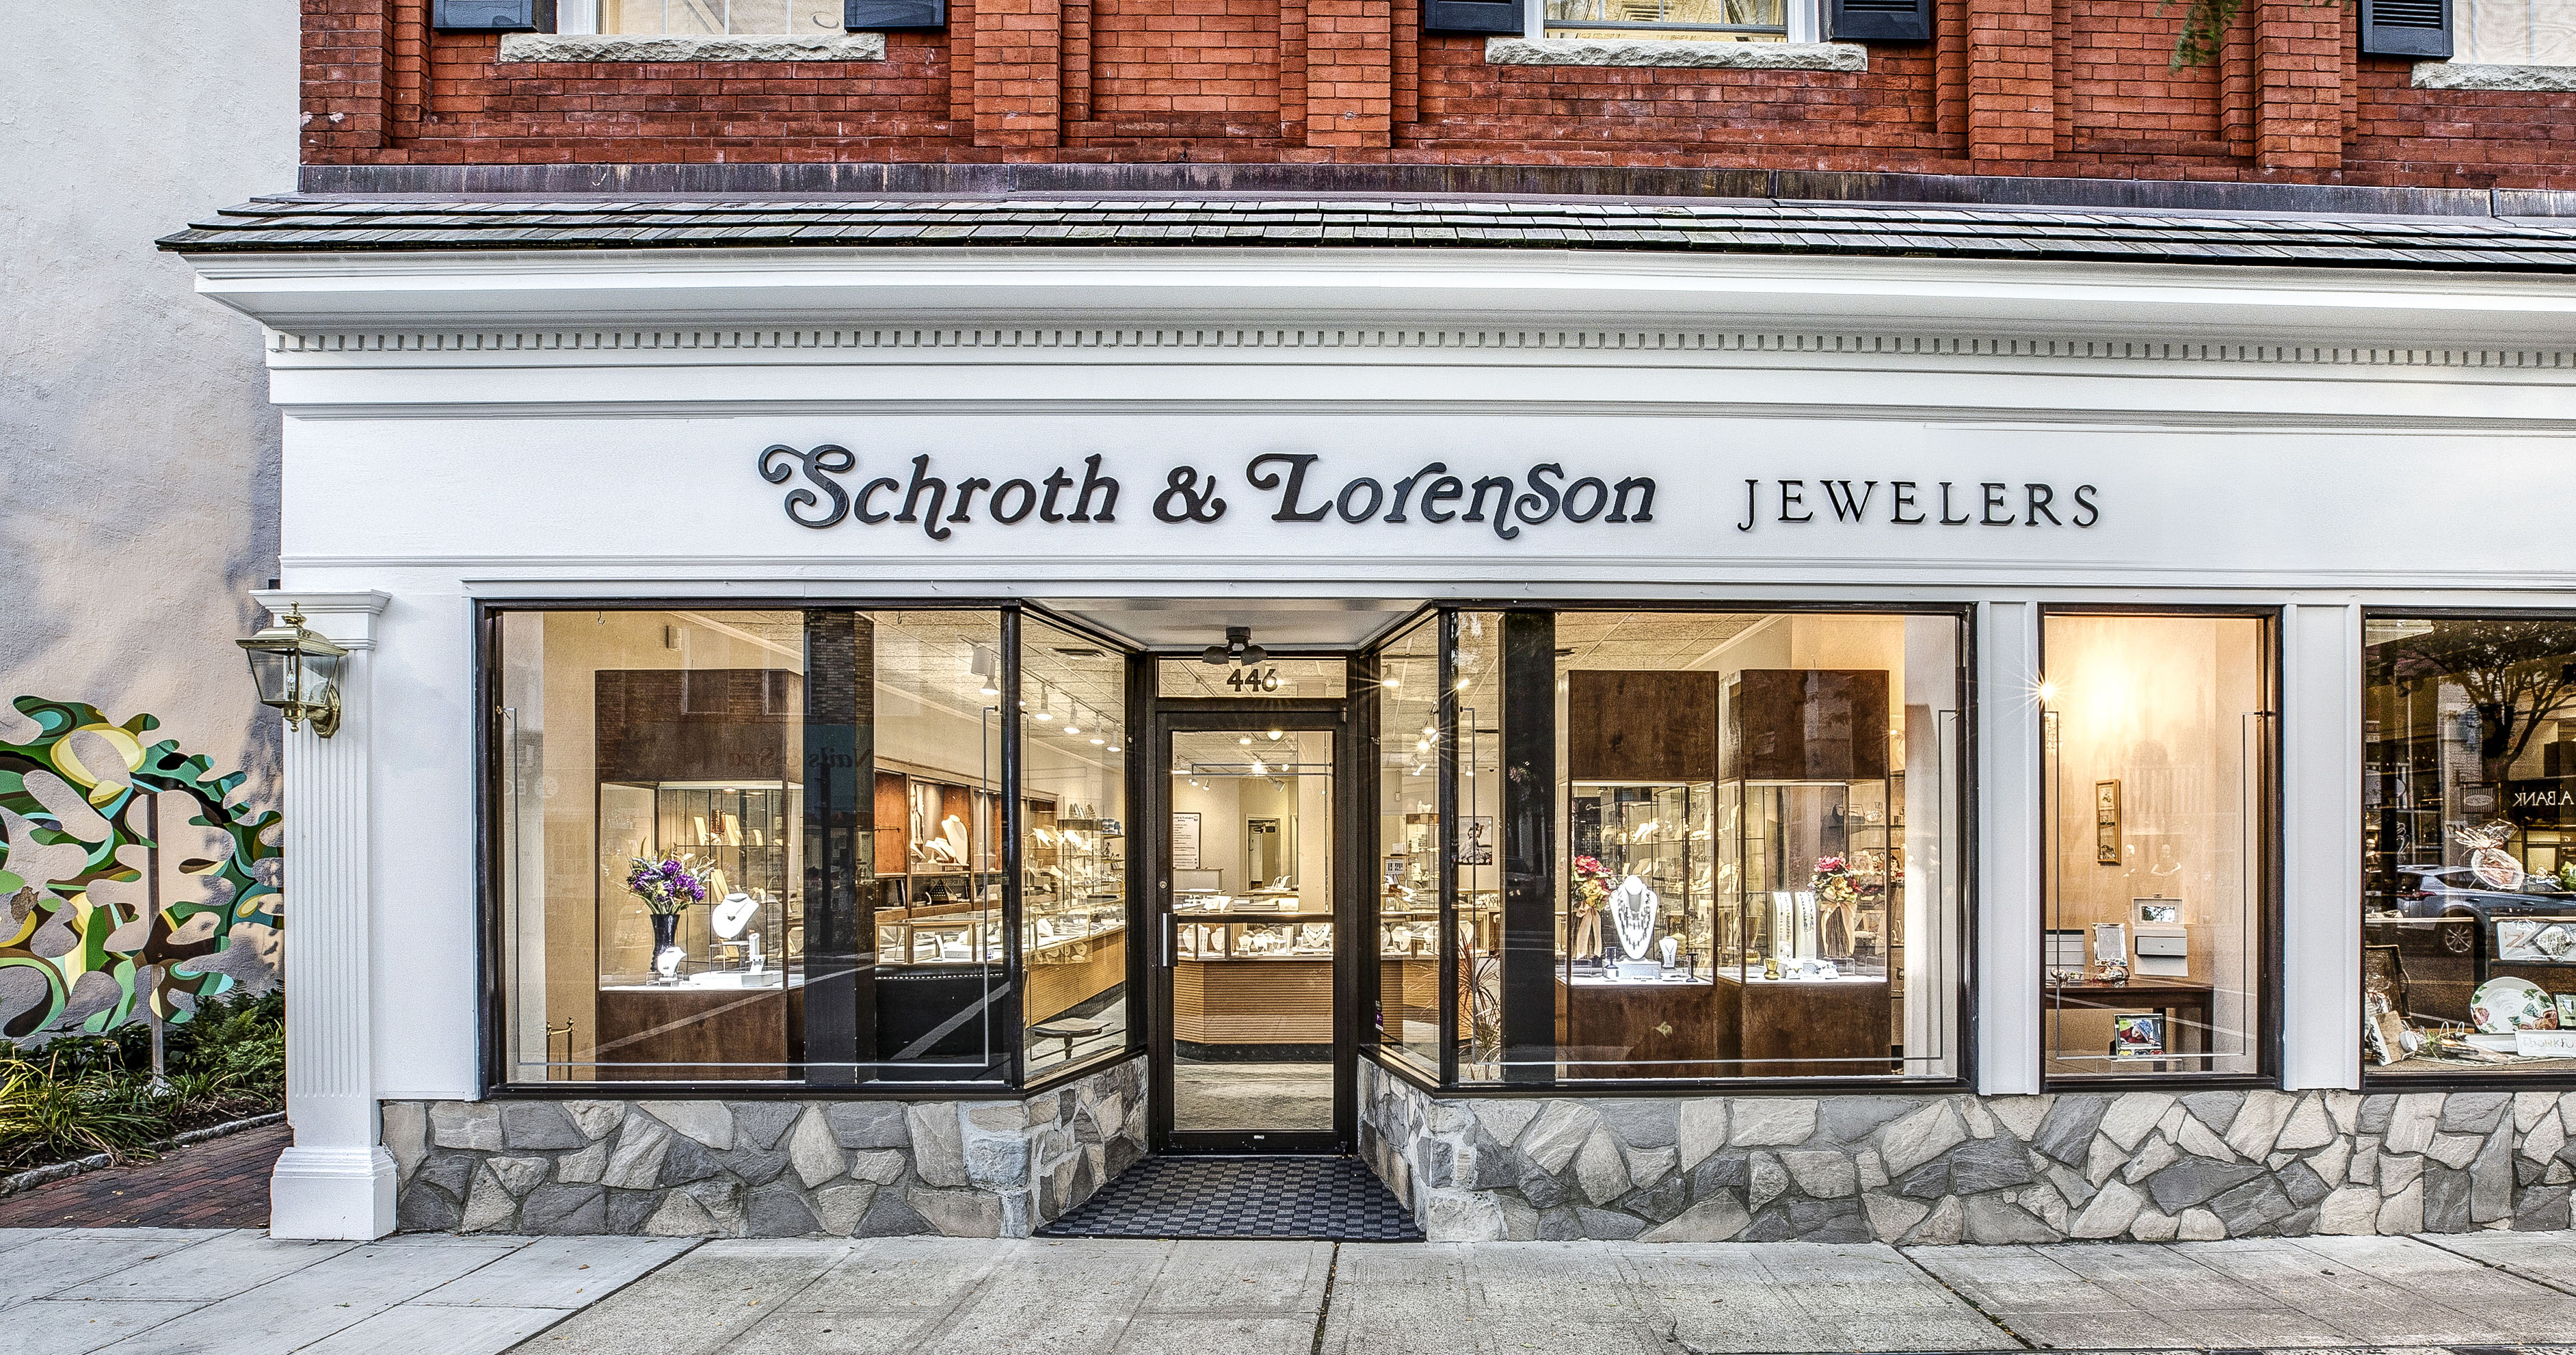 SCHROTH AND LORENSON JEWELERS